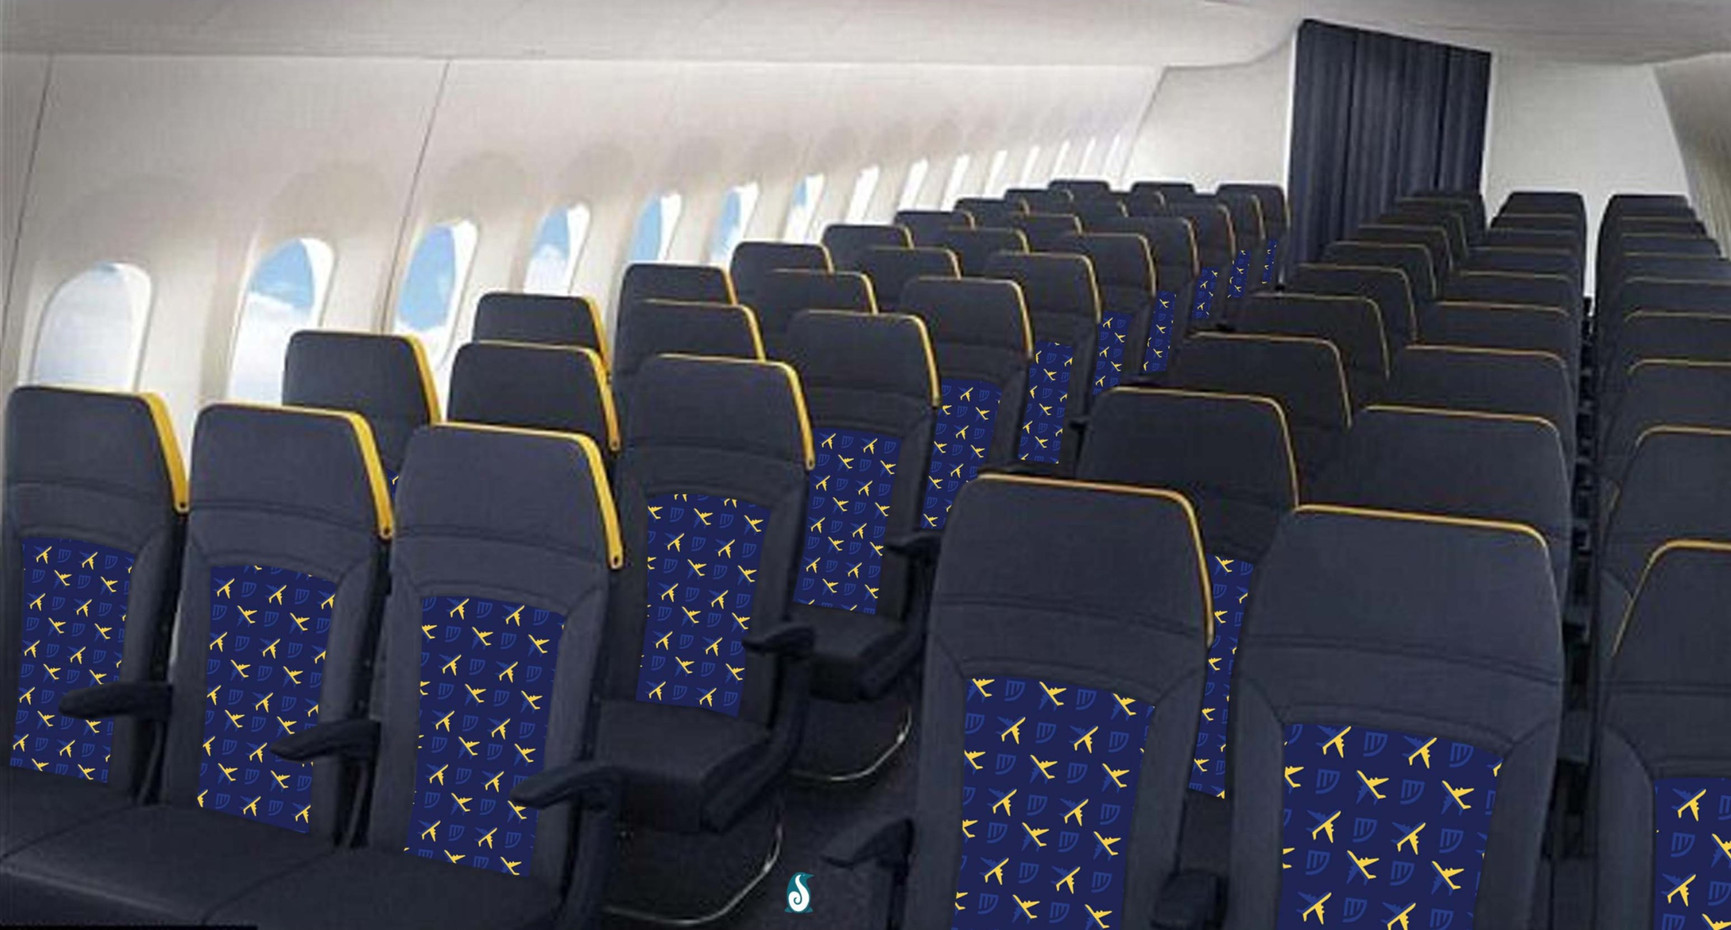 Ryanair - Seating Design